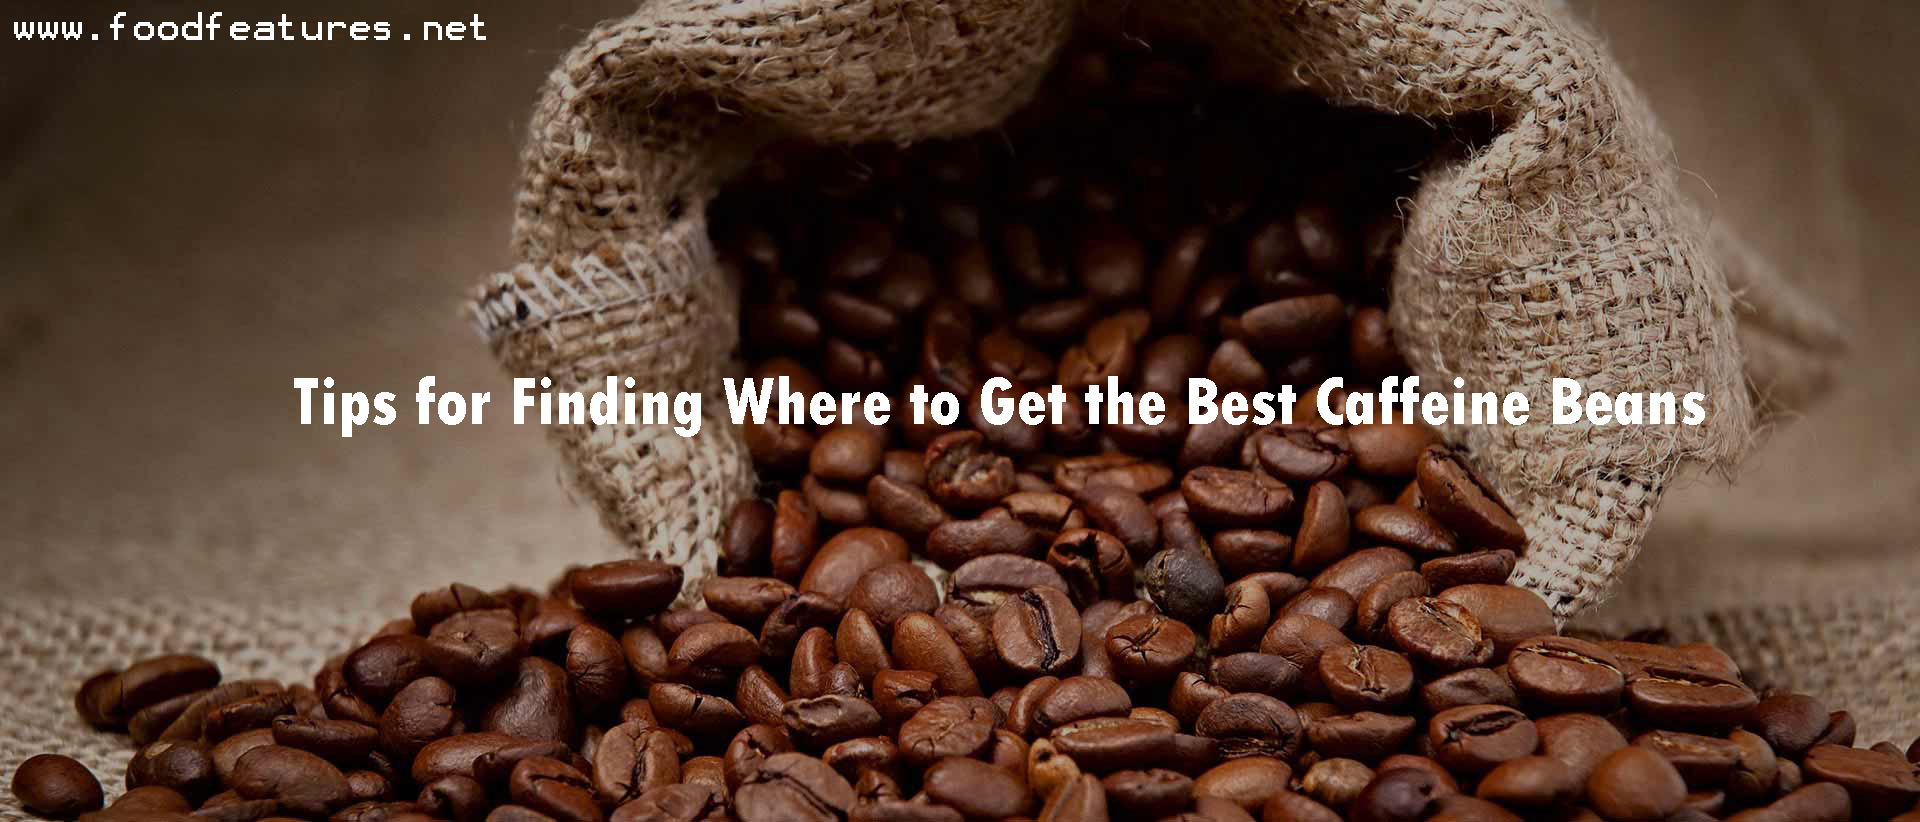 Tips for Finding Where to Get the Best Caffeine Beans